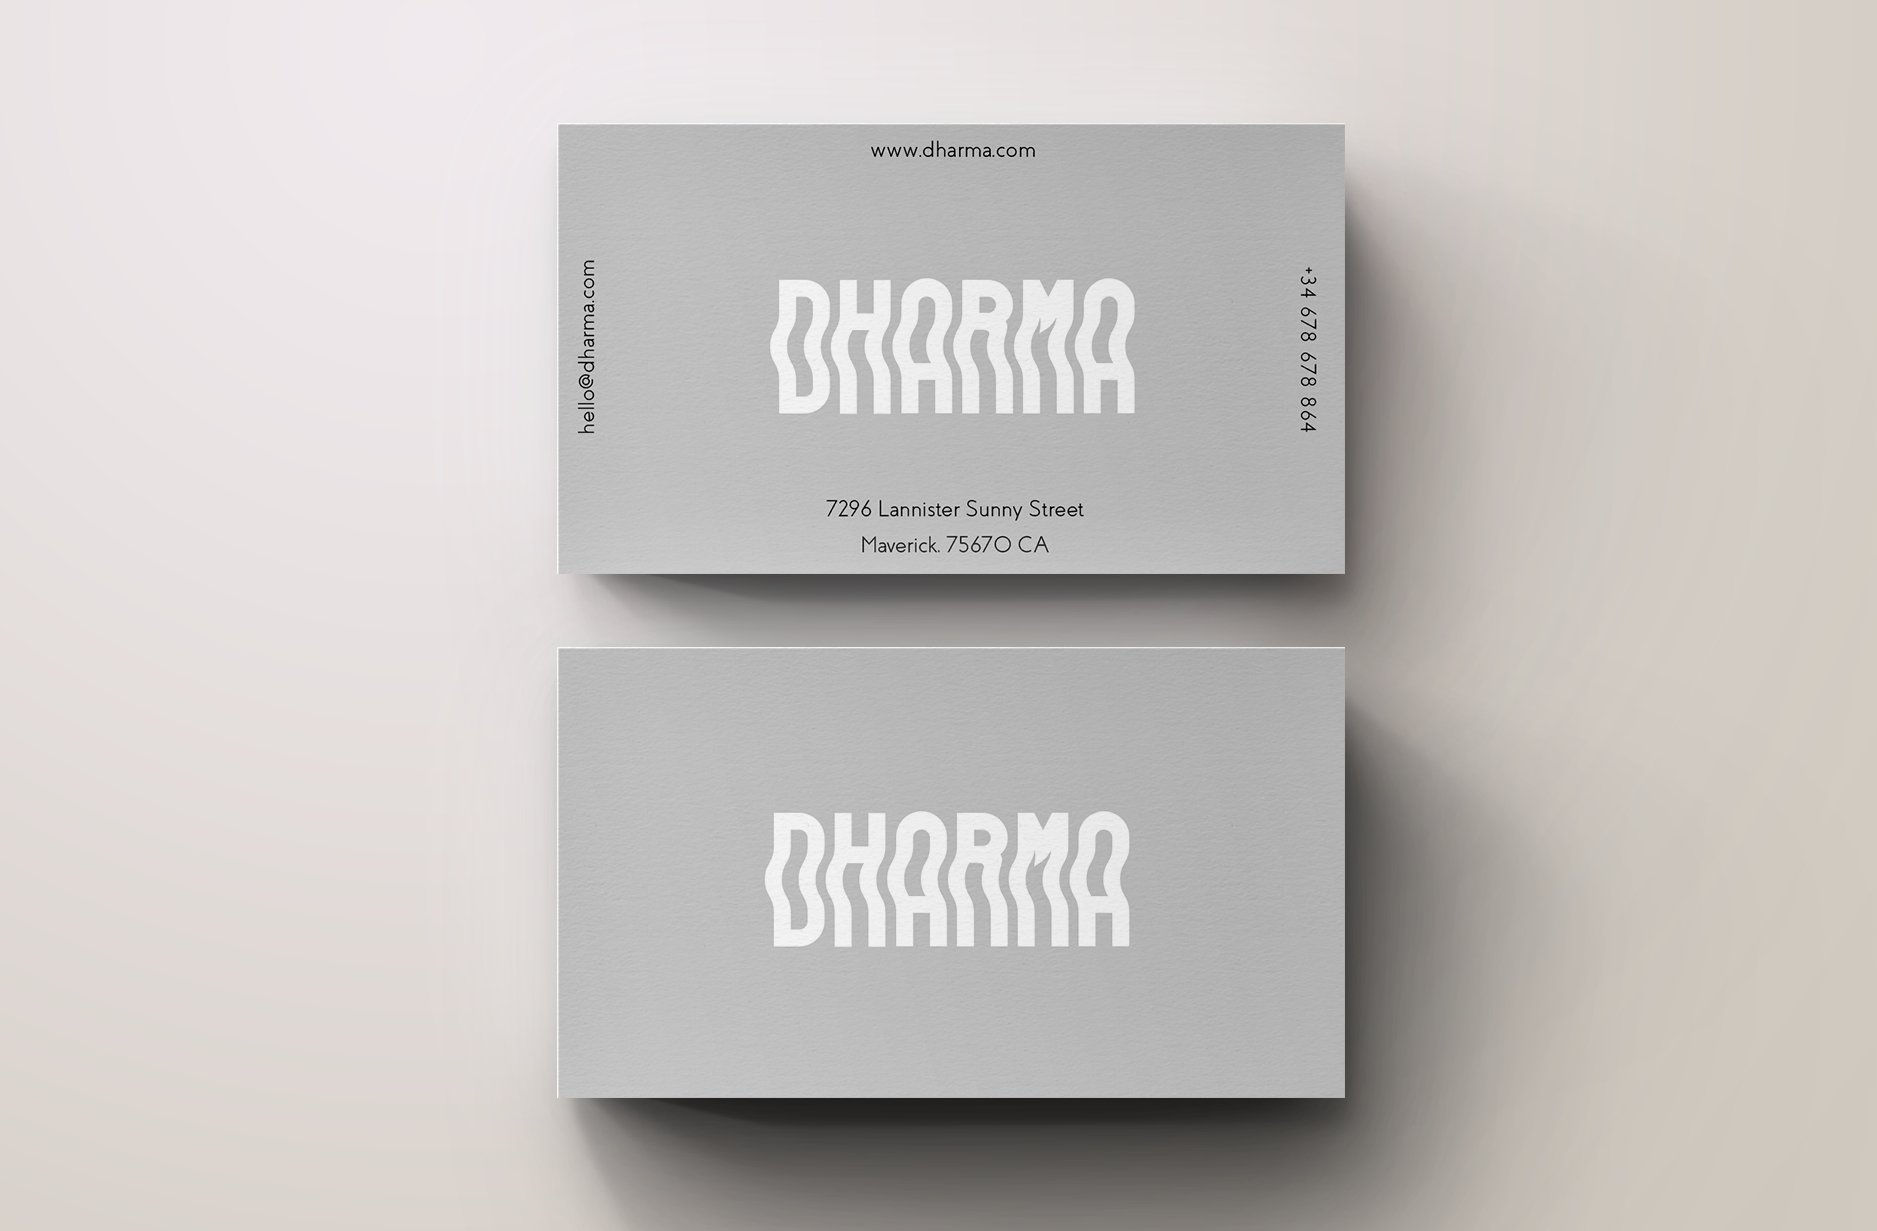 Dharma Modern Grey Business Card Templates Creative Market